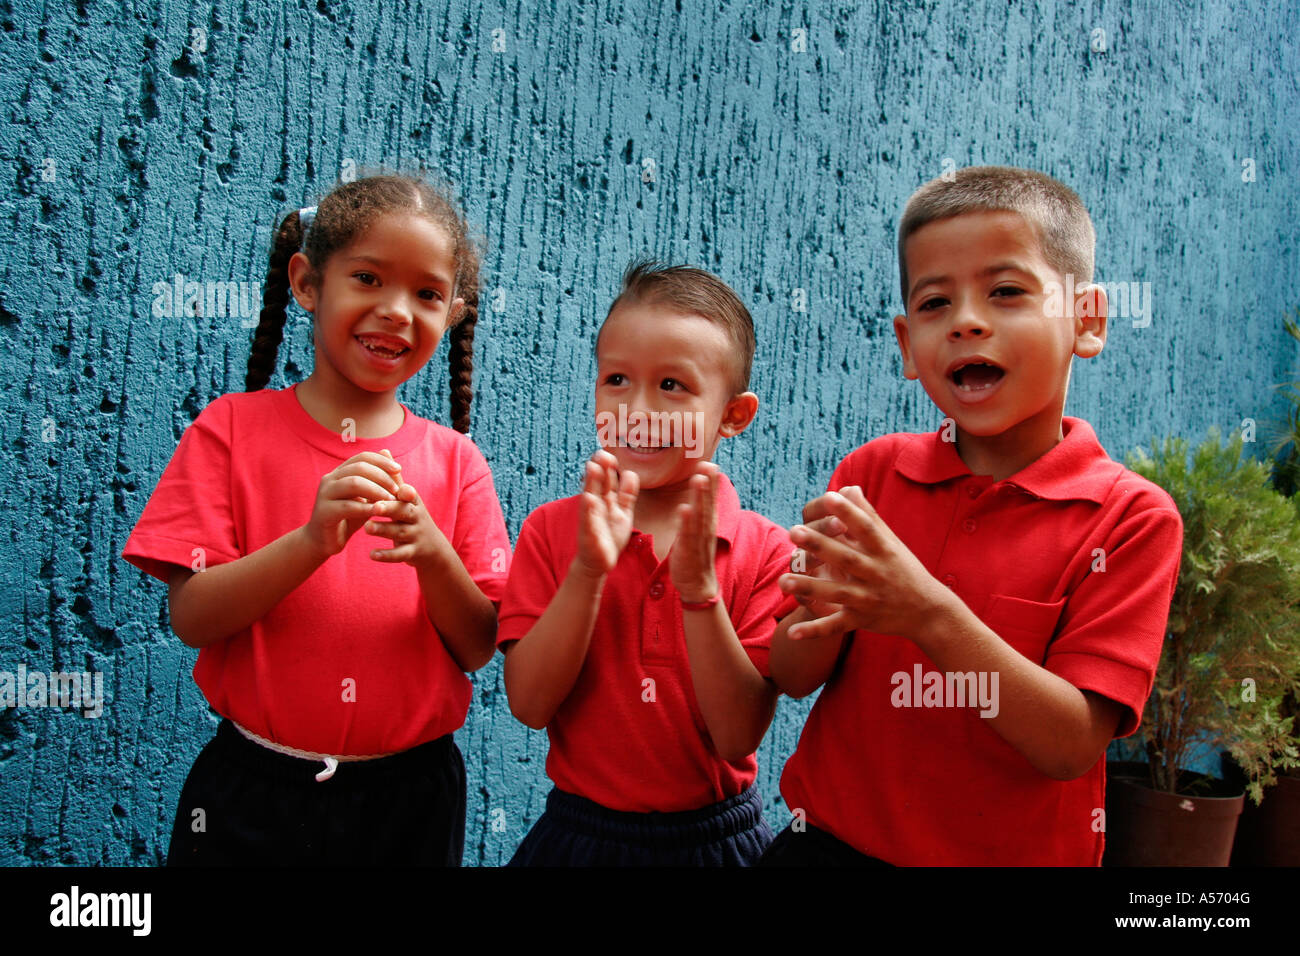 Painet ja1161 children kids venezuela primary school petanque ...